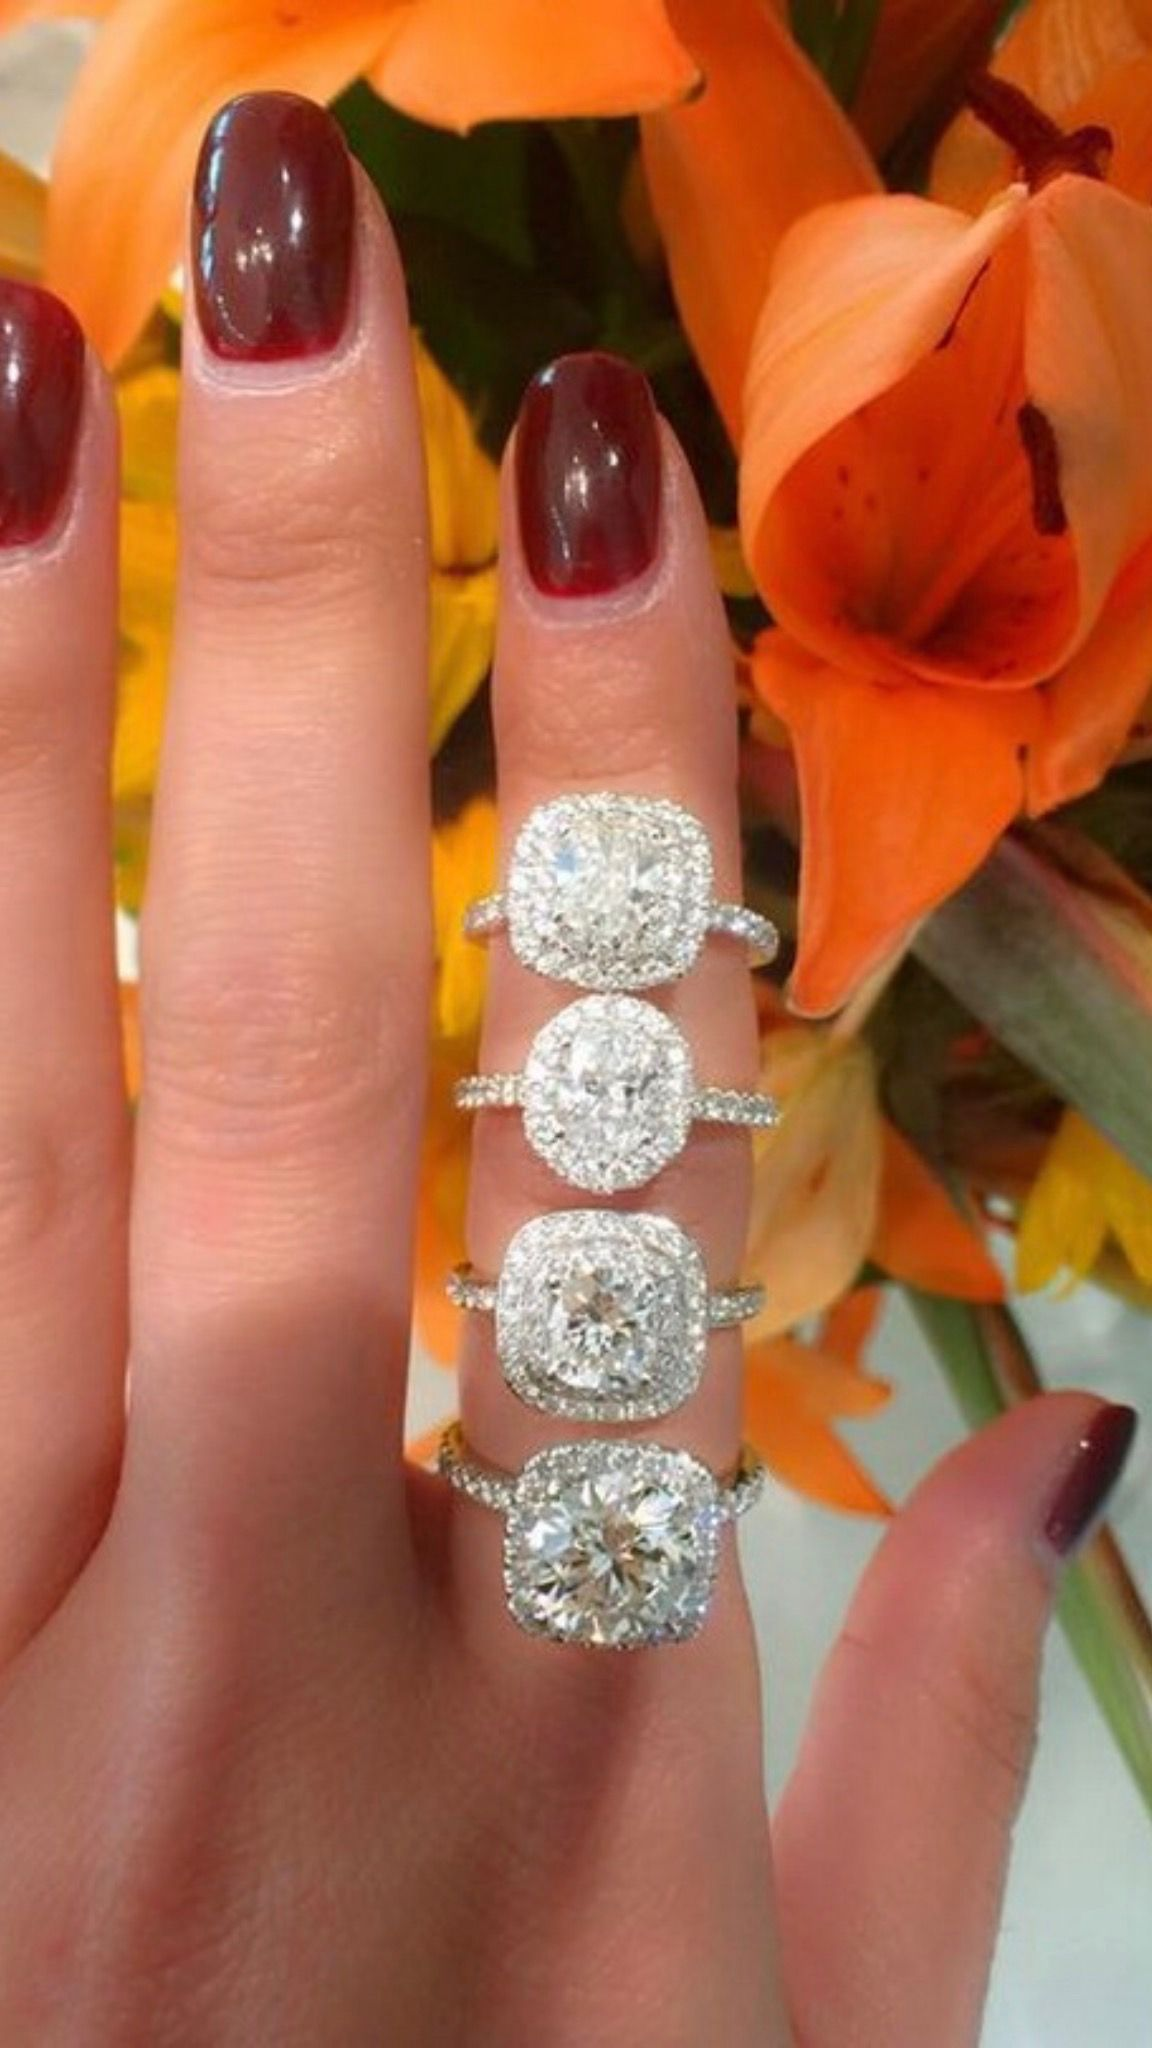 carot preset ring profile pave petite flawless wedding rings cut simulant white solitaire akgxqua ruxwona pictures low carat fashion diamond round promise gold in of engagement